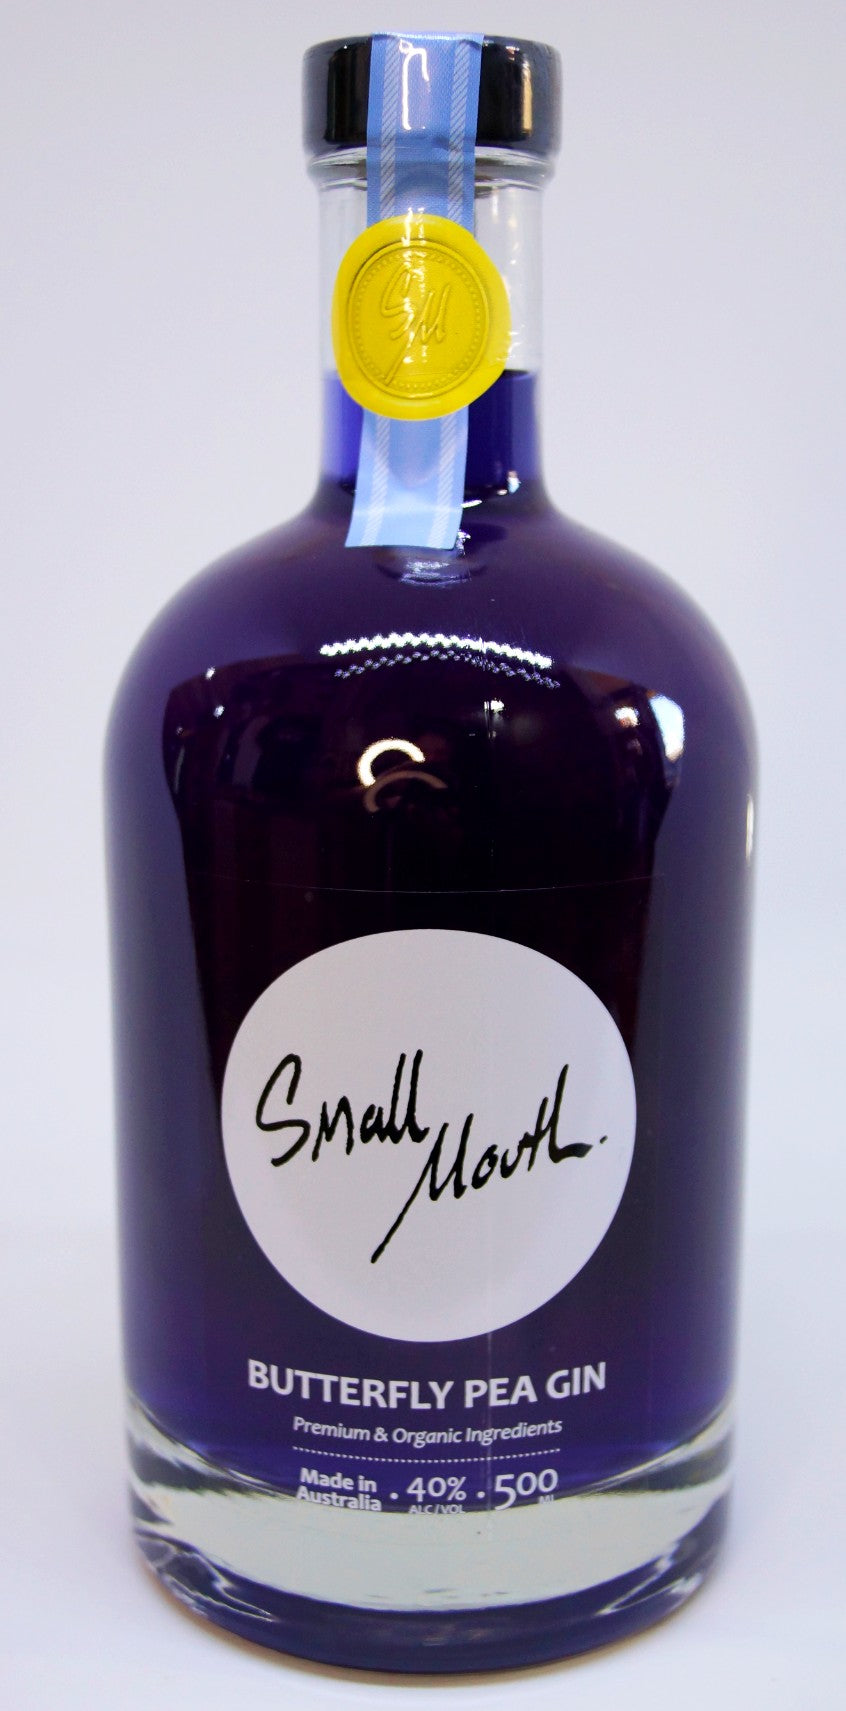 Small Mouth Butterfly Pea Gin